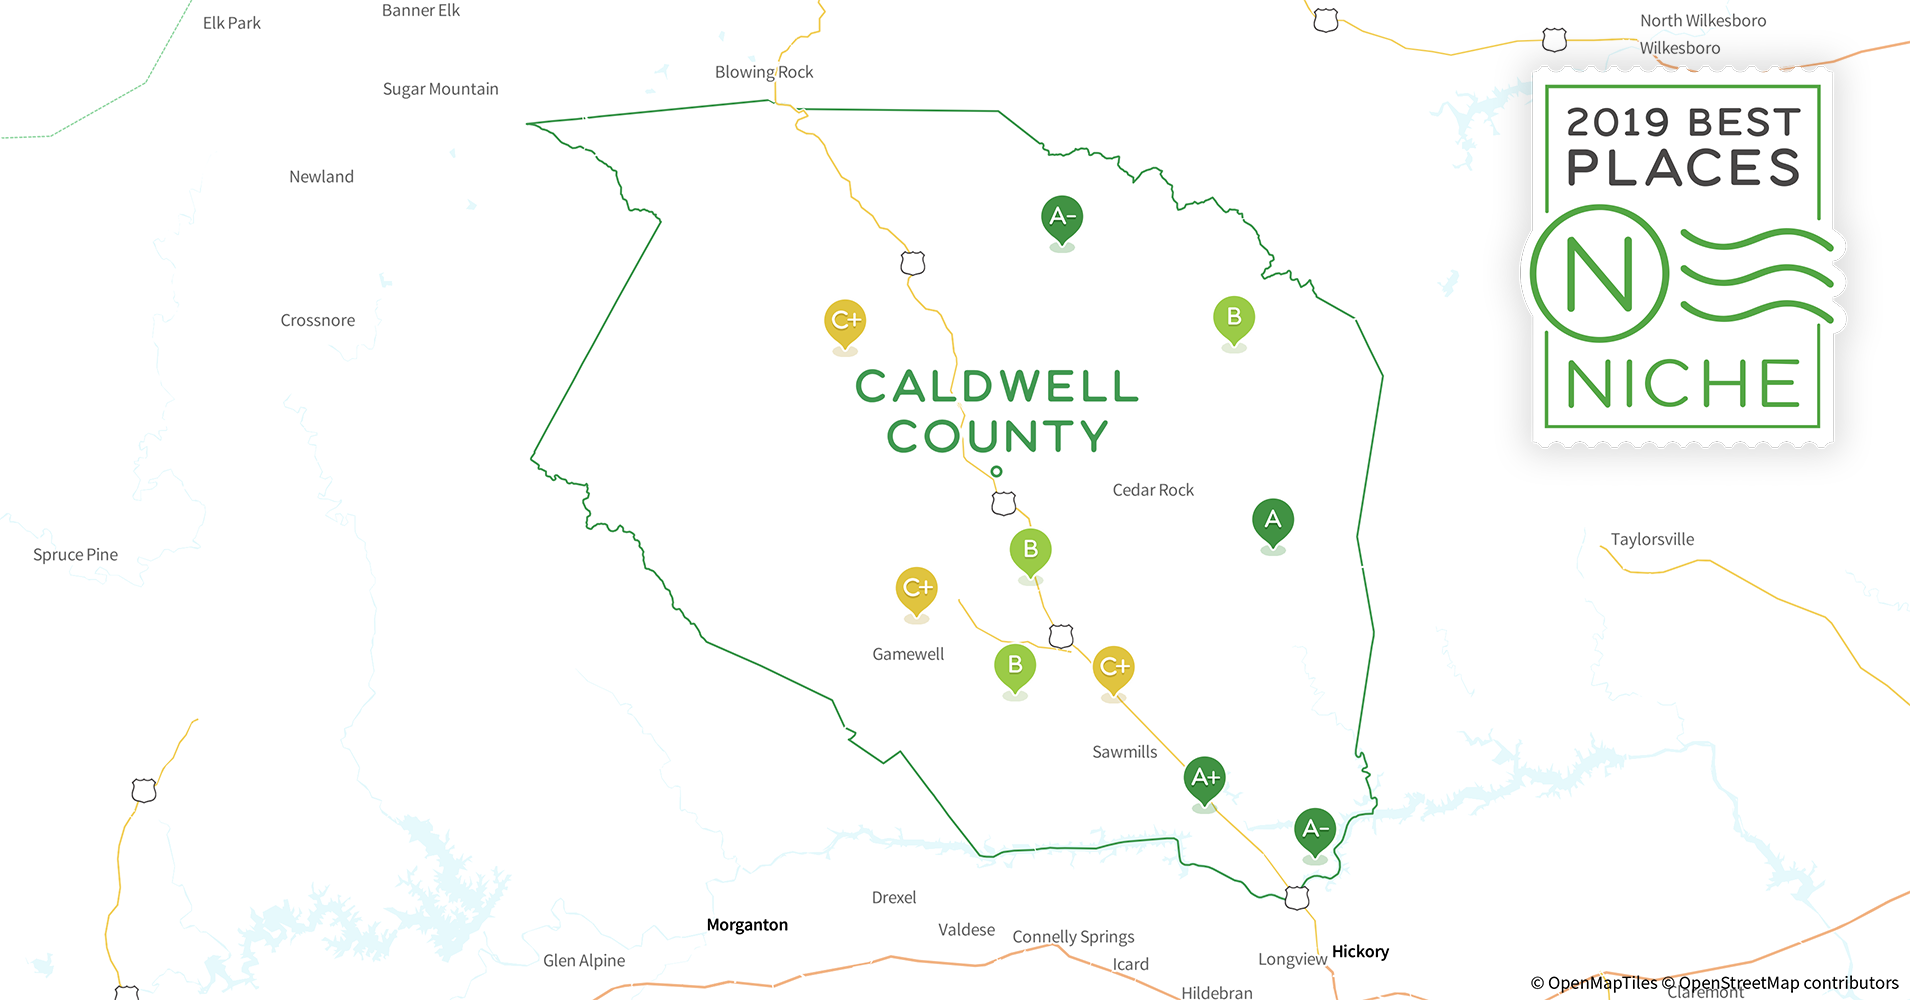 2019 Safe Places to Live in Caldwell County, NC - Niche Caldwell County Nc Map on